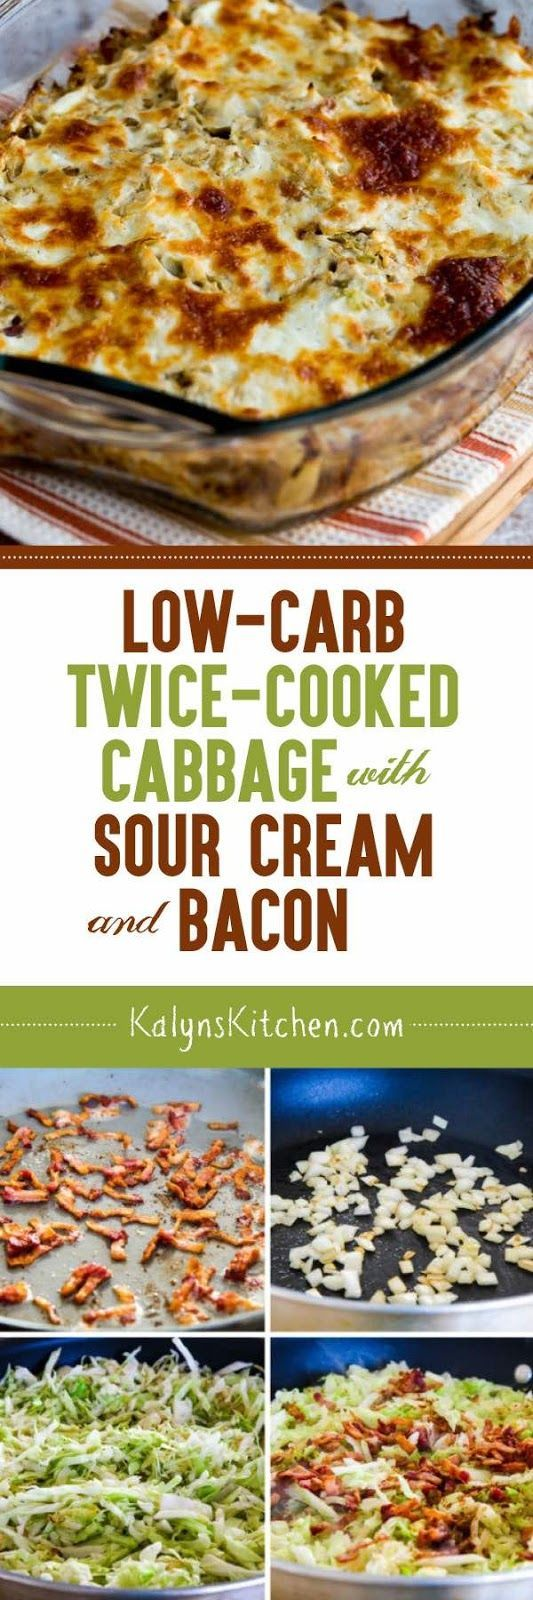 We swooned over this Low-Carb Twice-Cooked Cabbage with Sour Cream and Bacon when we tested the recipe, and this dish is also gluten-free. I'd eat it as an occasional treat for the South Beach Diet too, although South Beach would recommend turkey bacon. [found on KalynsKitchen.com]